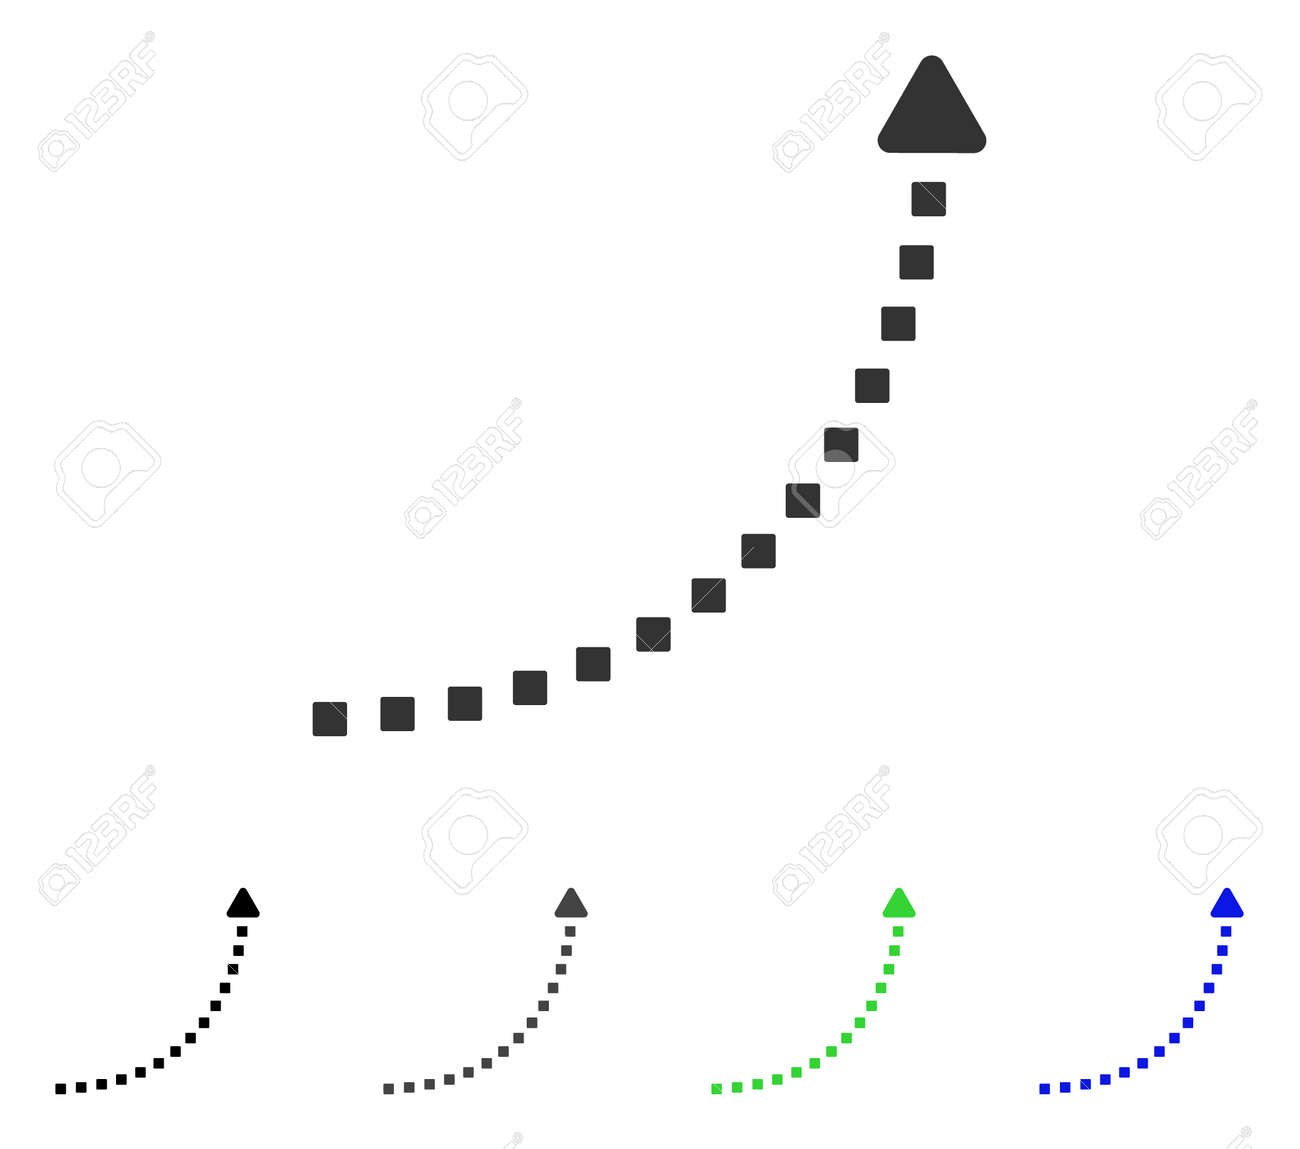 Dotted Growth Line flat vector illustration. Colored dotted growth line gray, black, blue, green icon variants. Flat icon style for graphic design. - 83040579